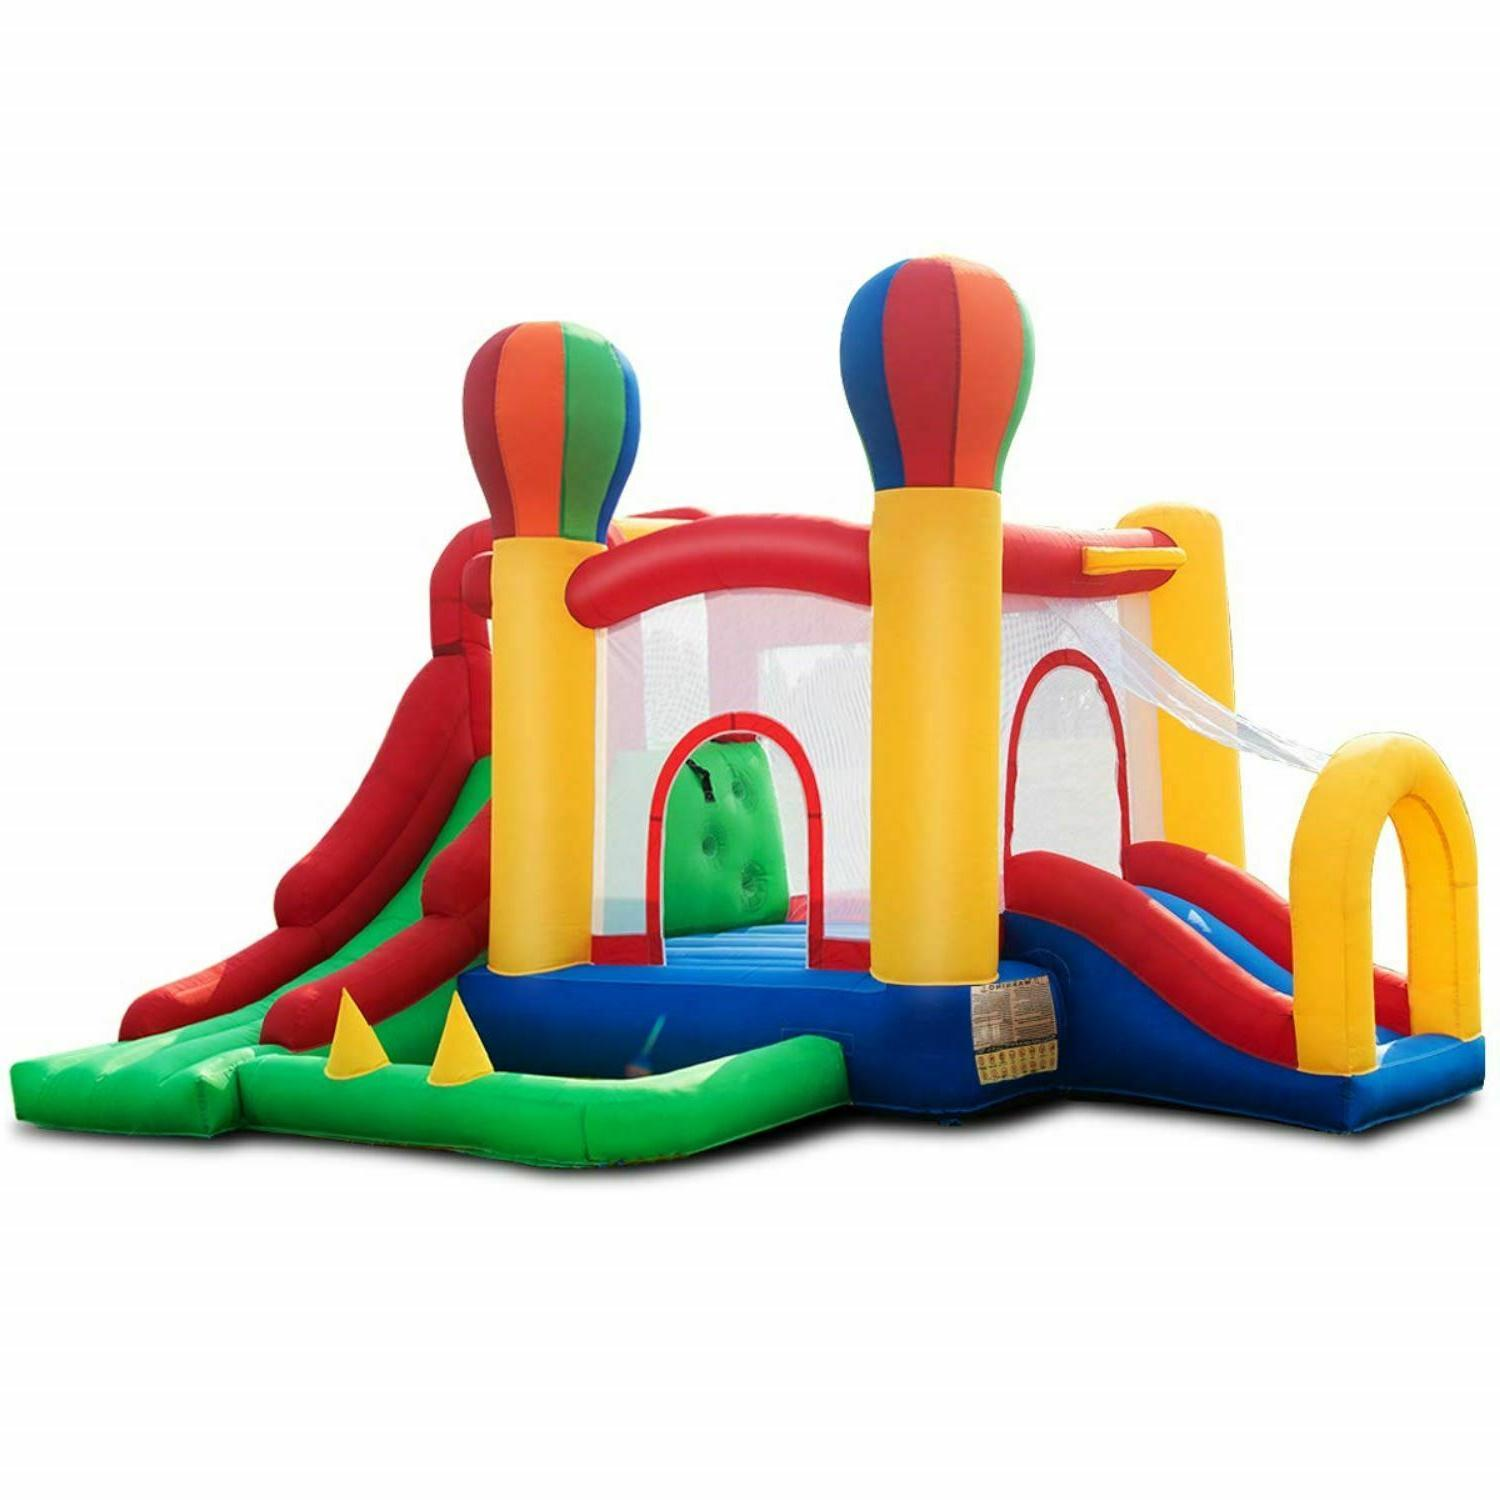 Commercial Inflatable House Kids Jumping Playhouse